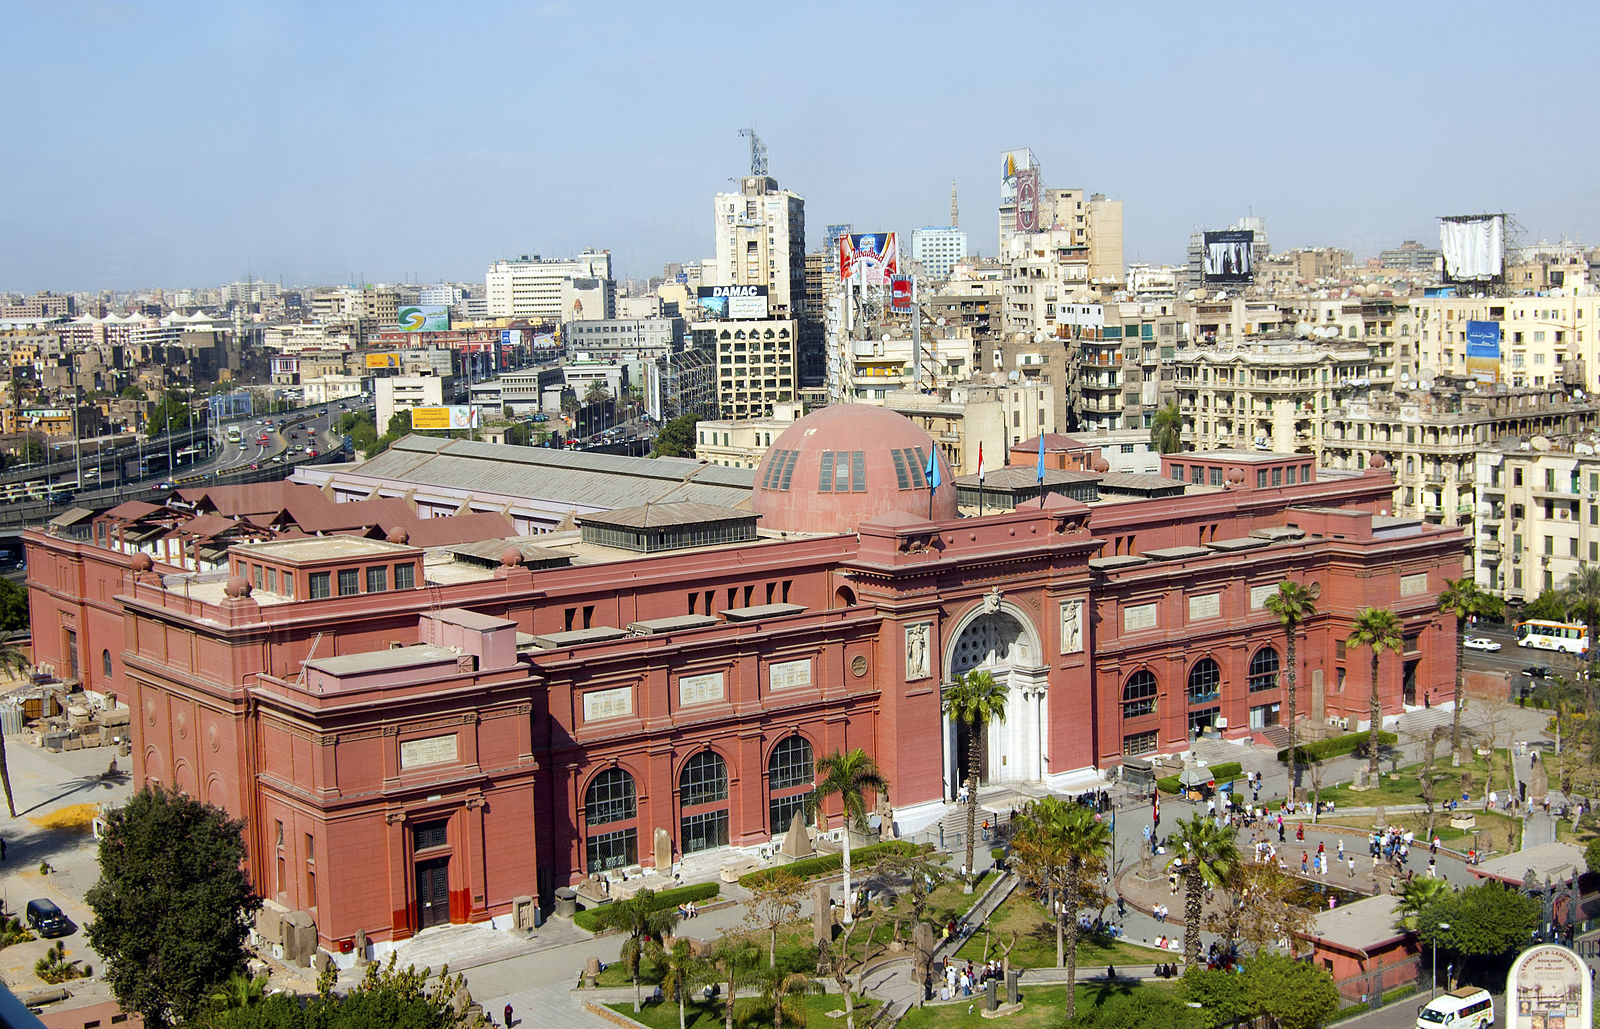 Egypt extends suspension of museums, archaeological sites, hotel activities until April 15